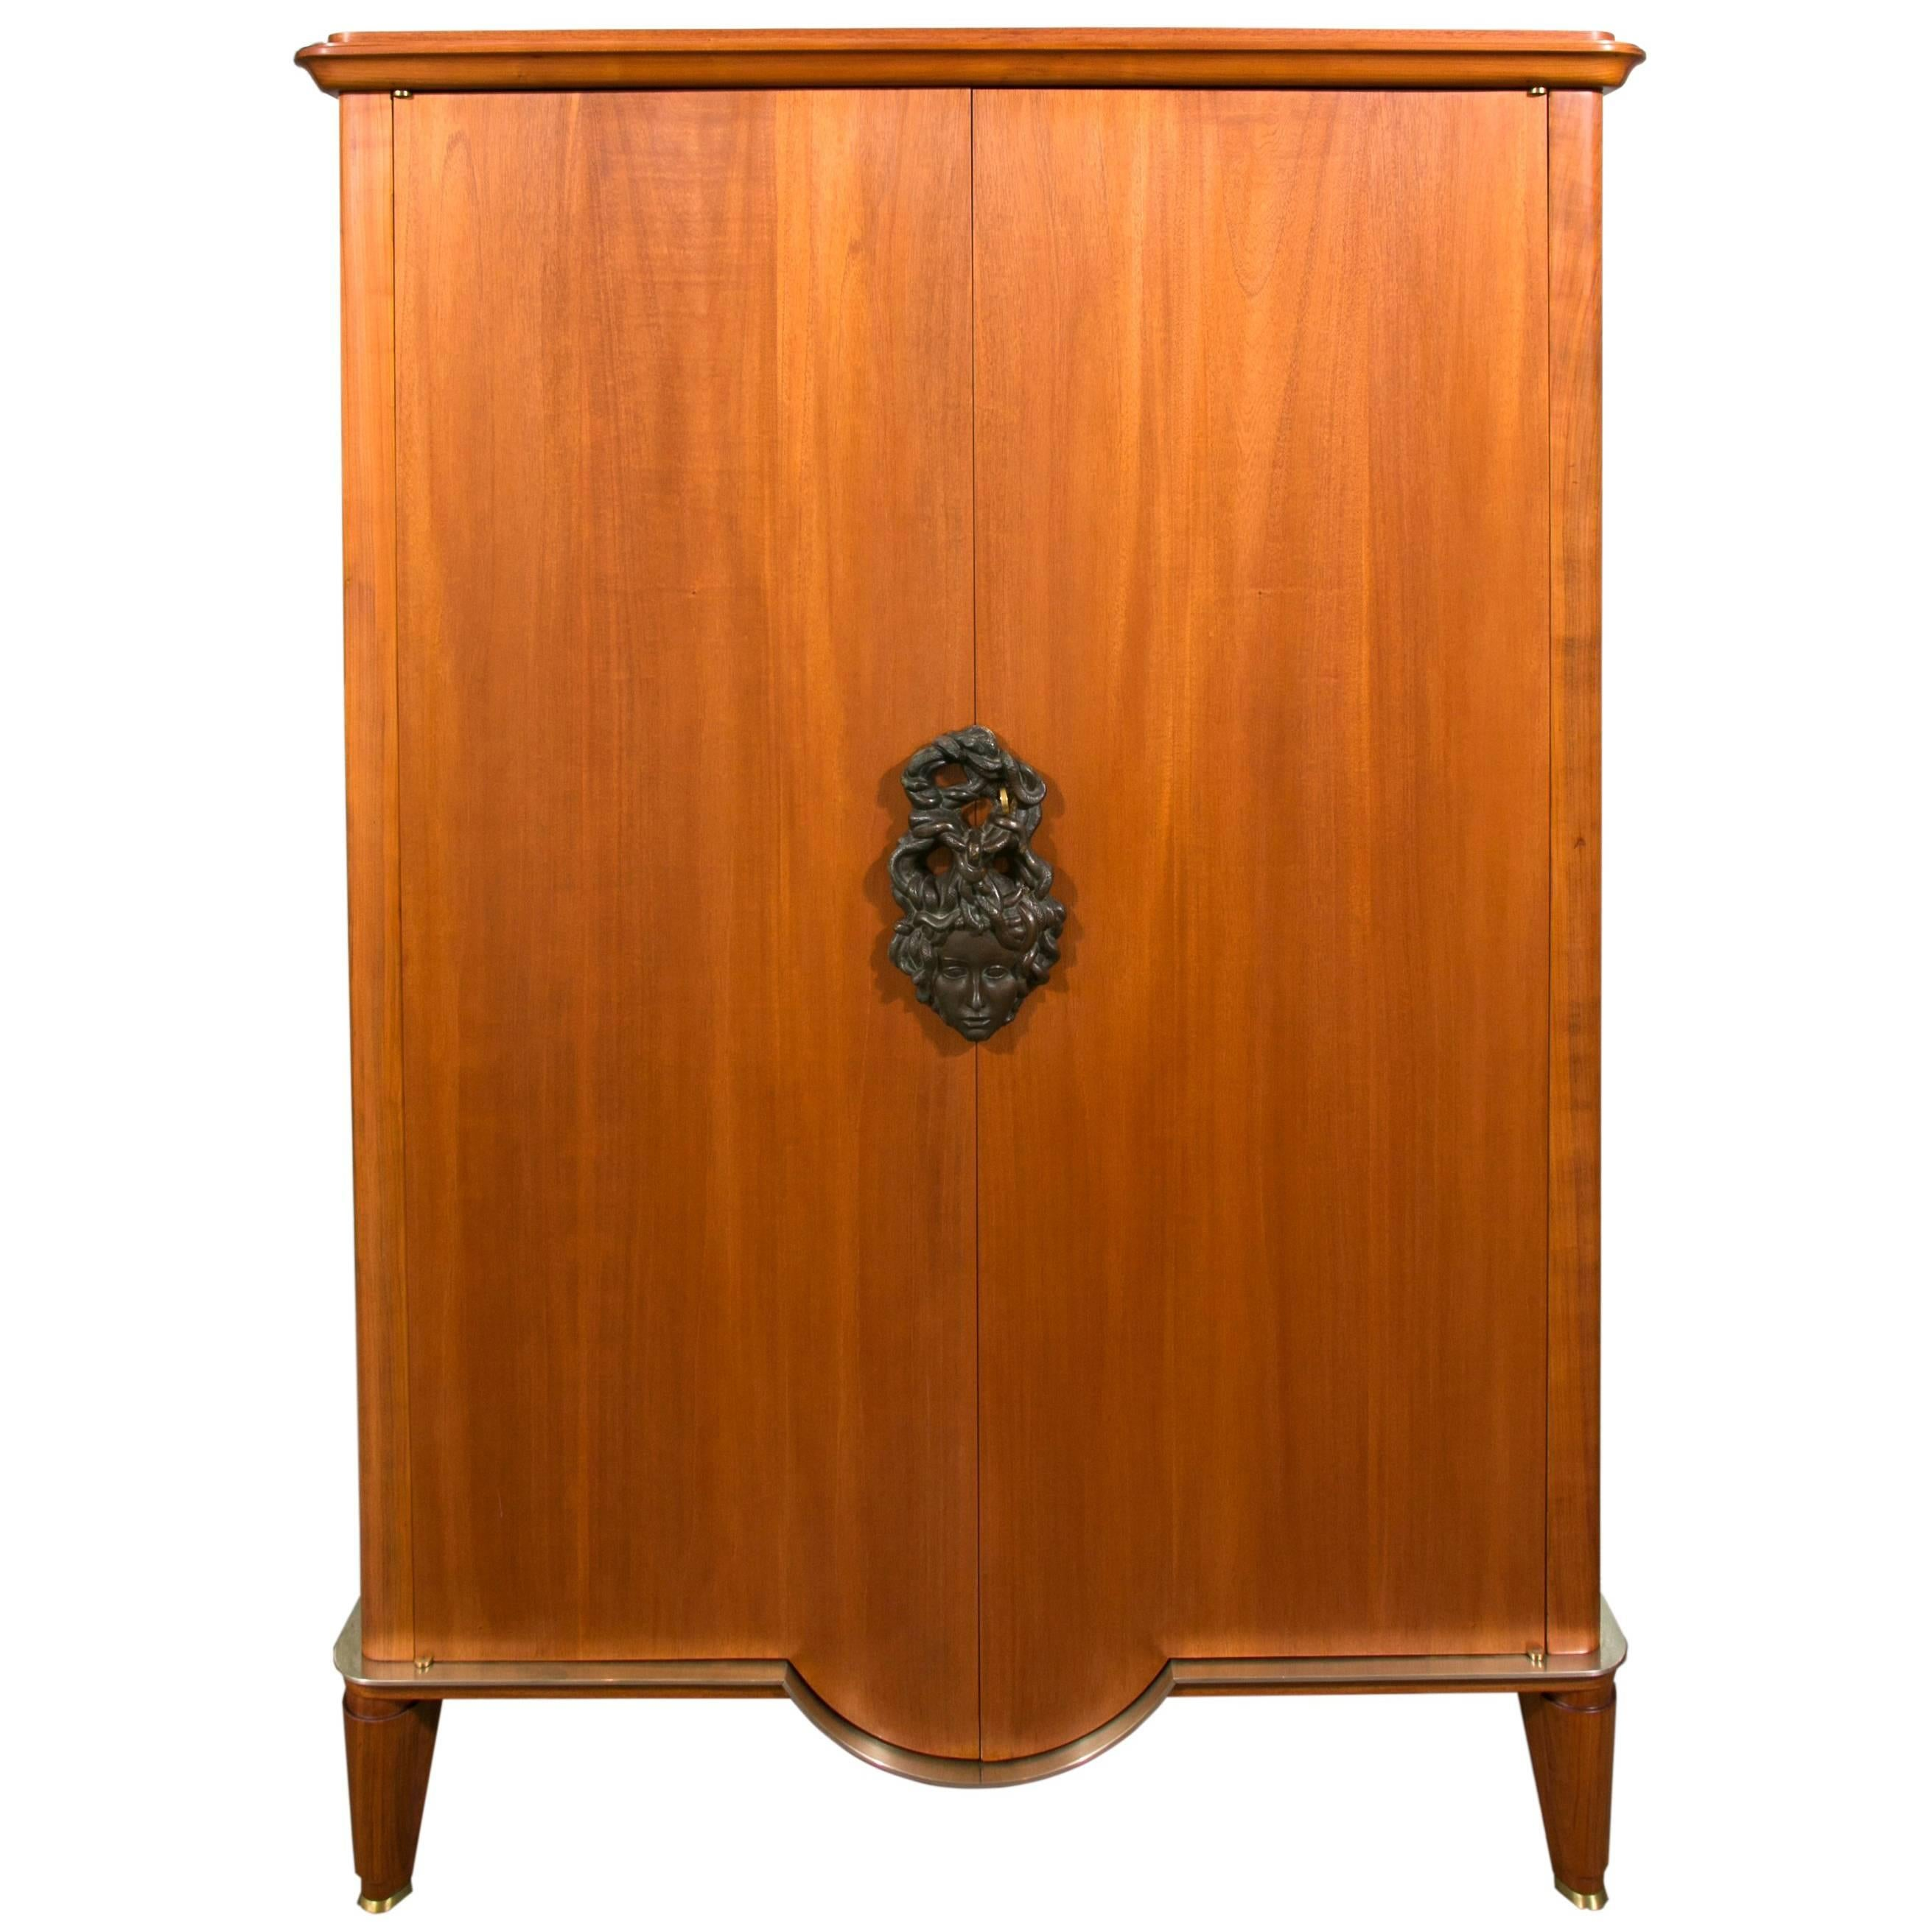 Superbe Art Deco Armoire By Andre Arbus And Vadim Androusov